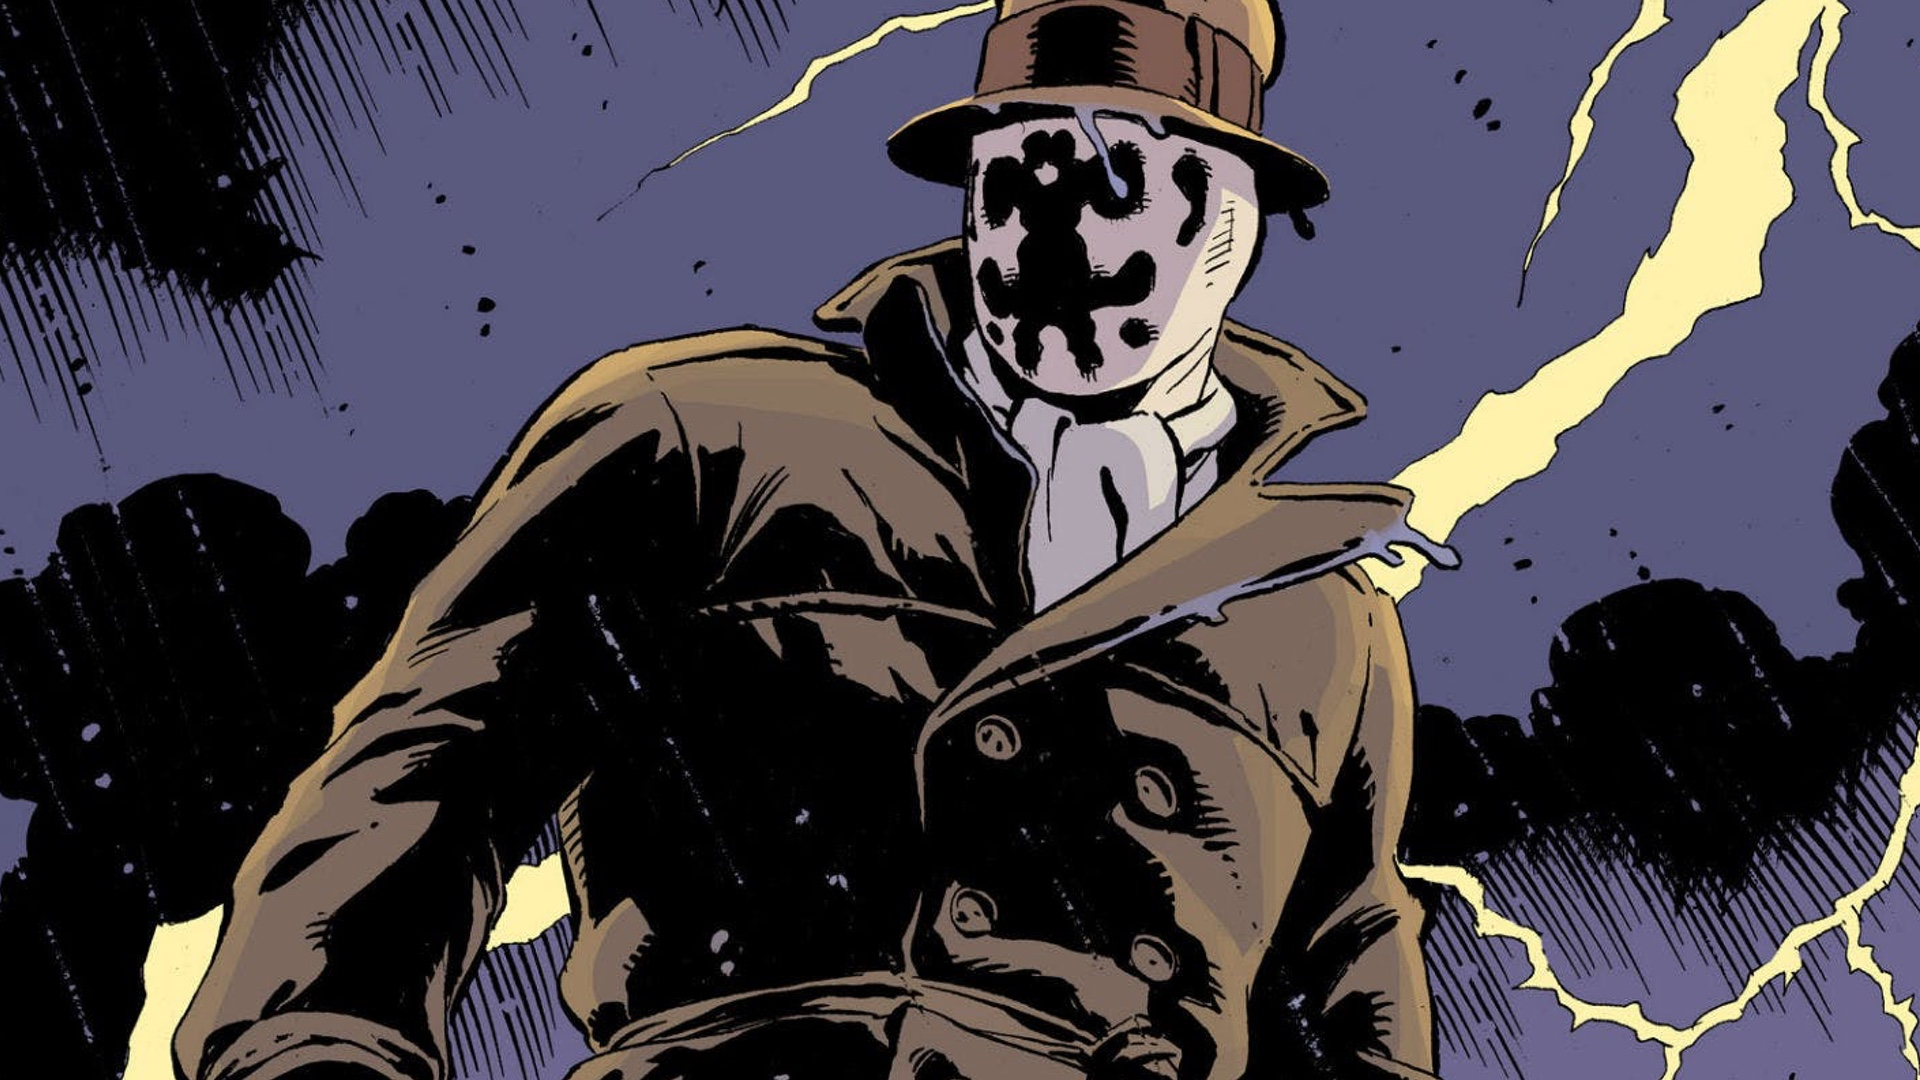 damon-lindelof-writes-a-letter-regarding-watchmen-and-his-series-will-not-adapt-allan-moores-story-social.jpg